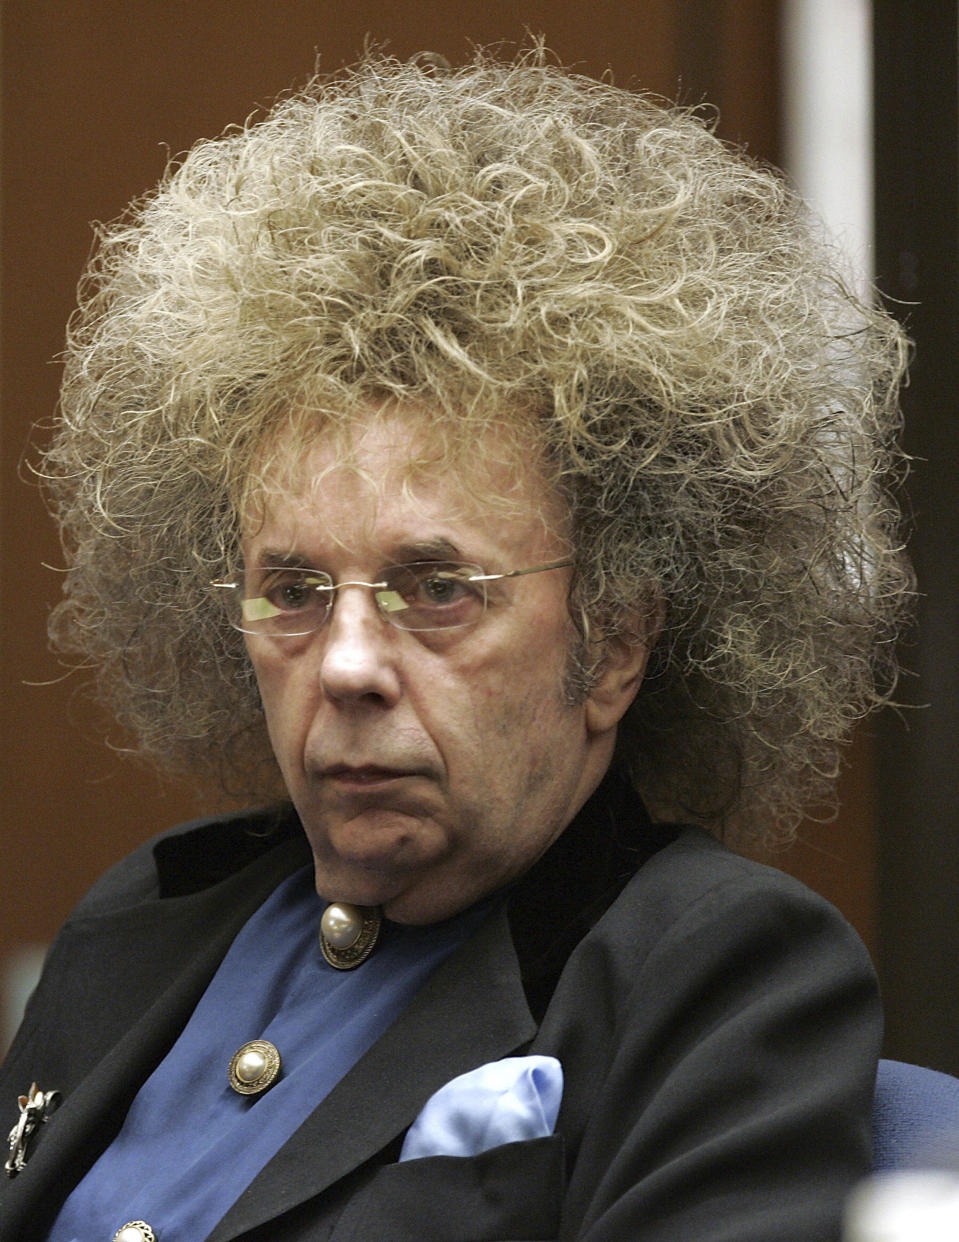 "FILE - In this May 23, 2005 file photo music producer Phil Spector appears during his trial at the Los Angeles Superior Court in Los Angeles. Spector, the eccentric and revolutionary music producer who transformed rock music with his ""Wall of Sound"" method and who was later convicted of murder, died Saturday, Jan. 16, 2021, at age 81. (AP Photo/Damian Dovarganes, File)"